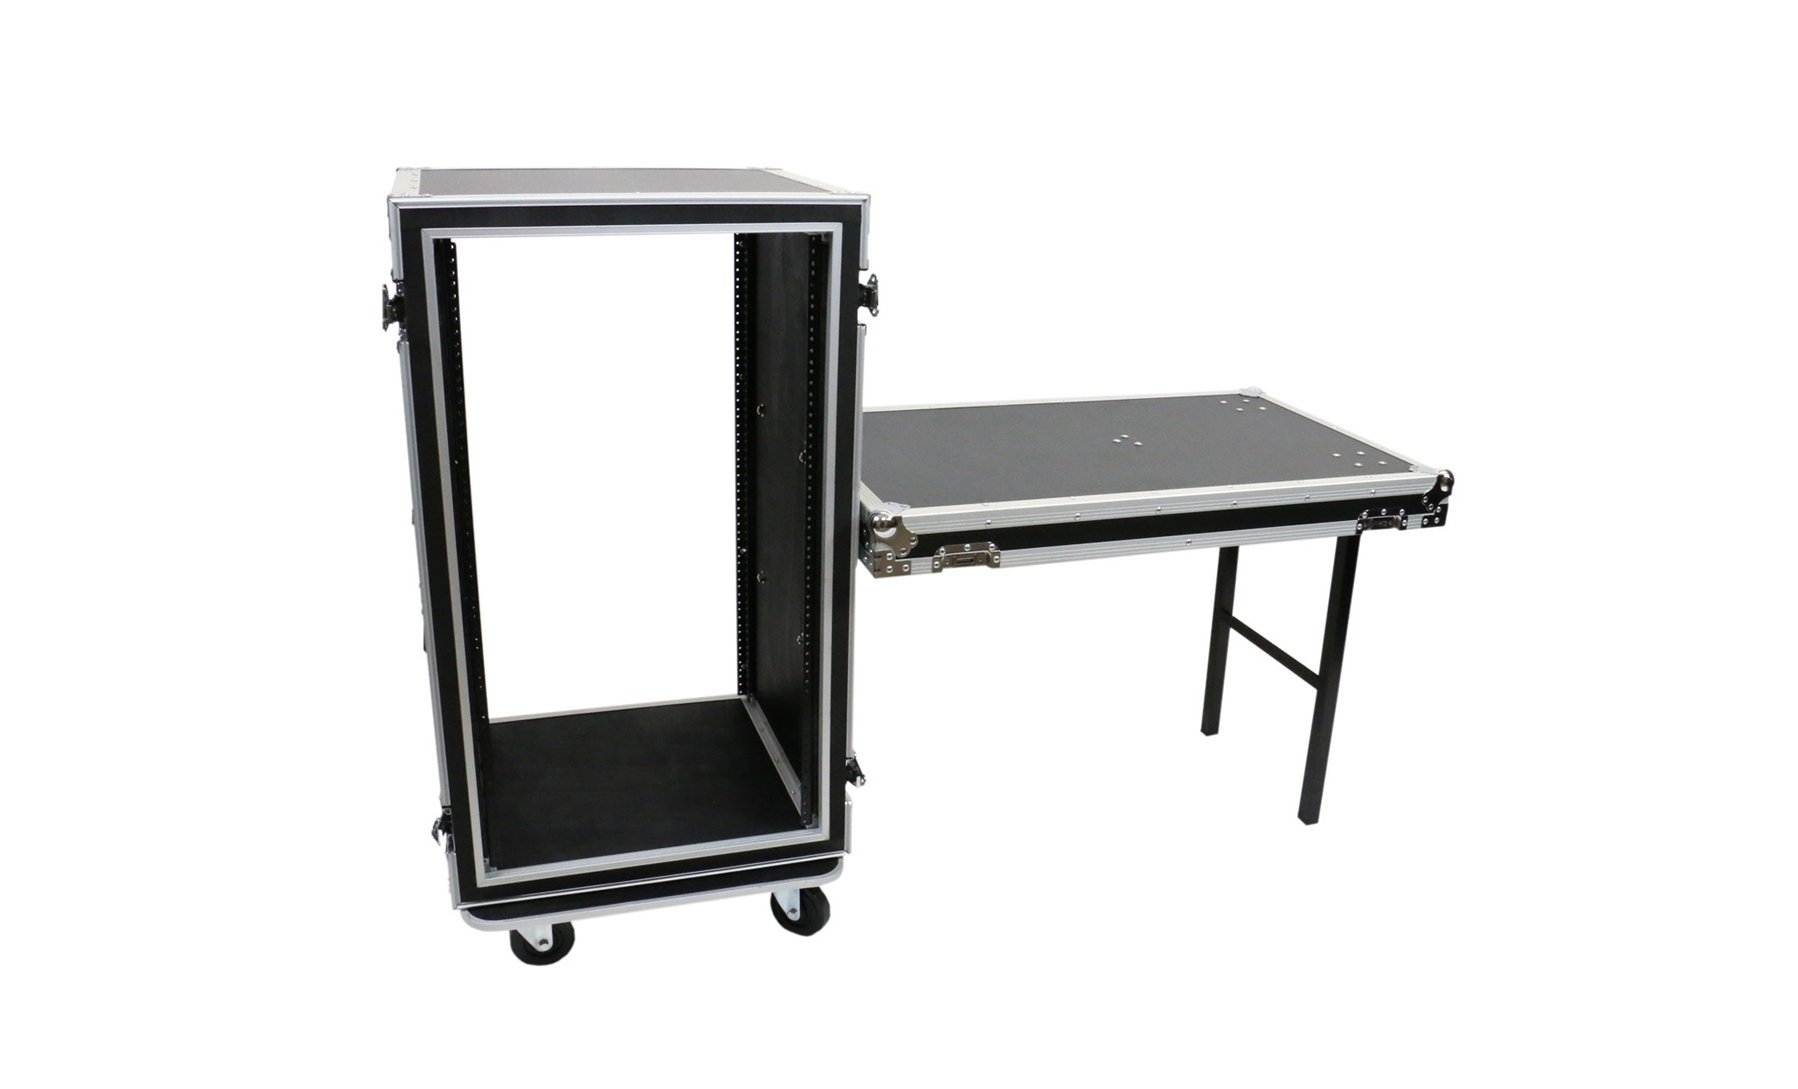 20-Space ATA Amp Rack with Casters & Standing Lid